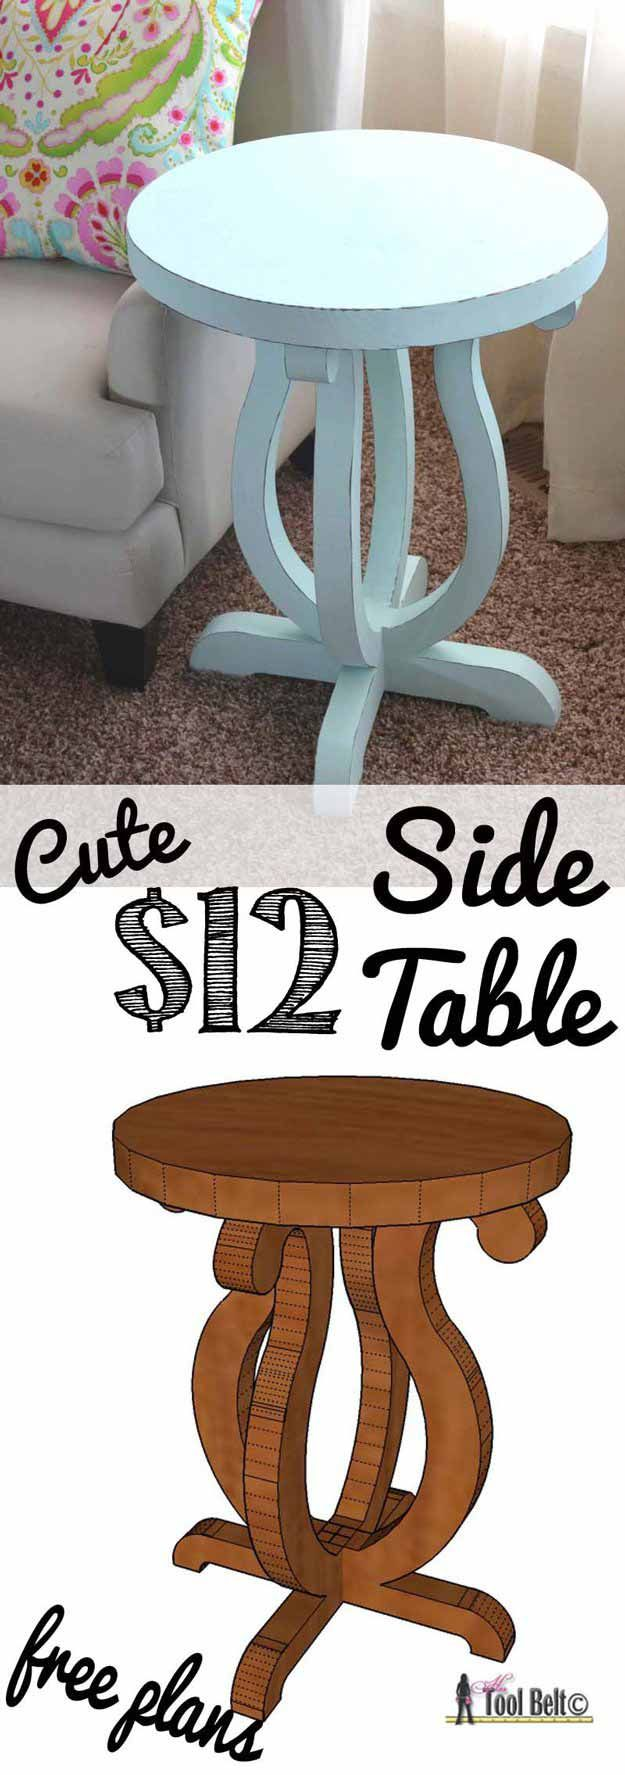 Easy Woodworking Projects Diy Craft Ideas How To S For Home Decor With Videos